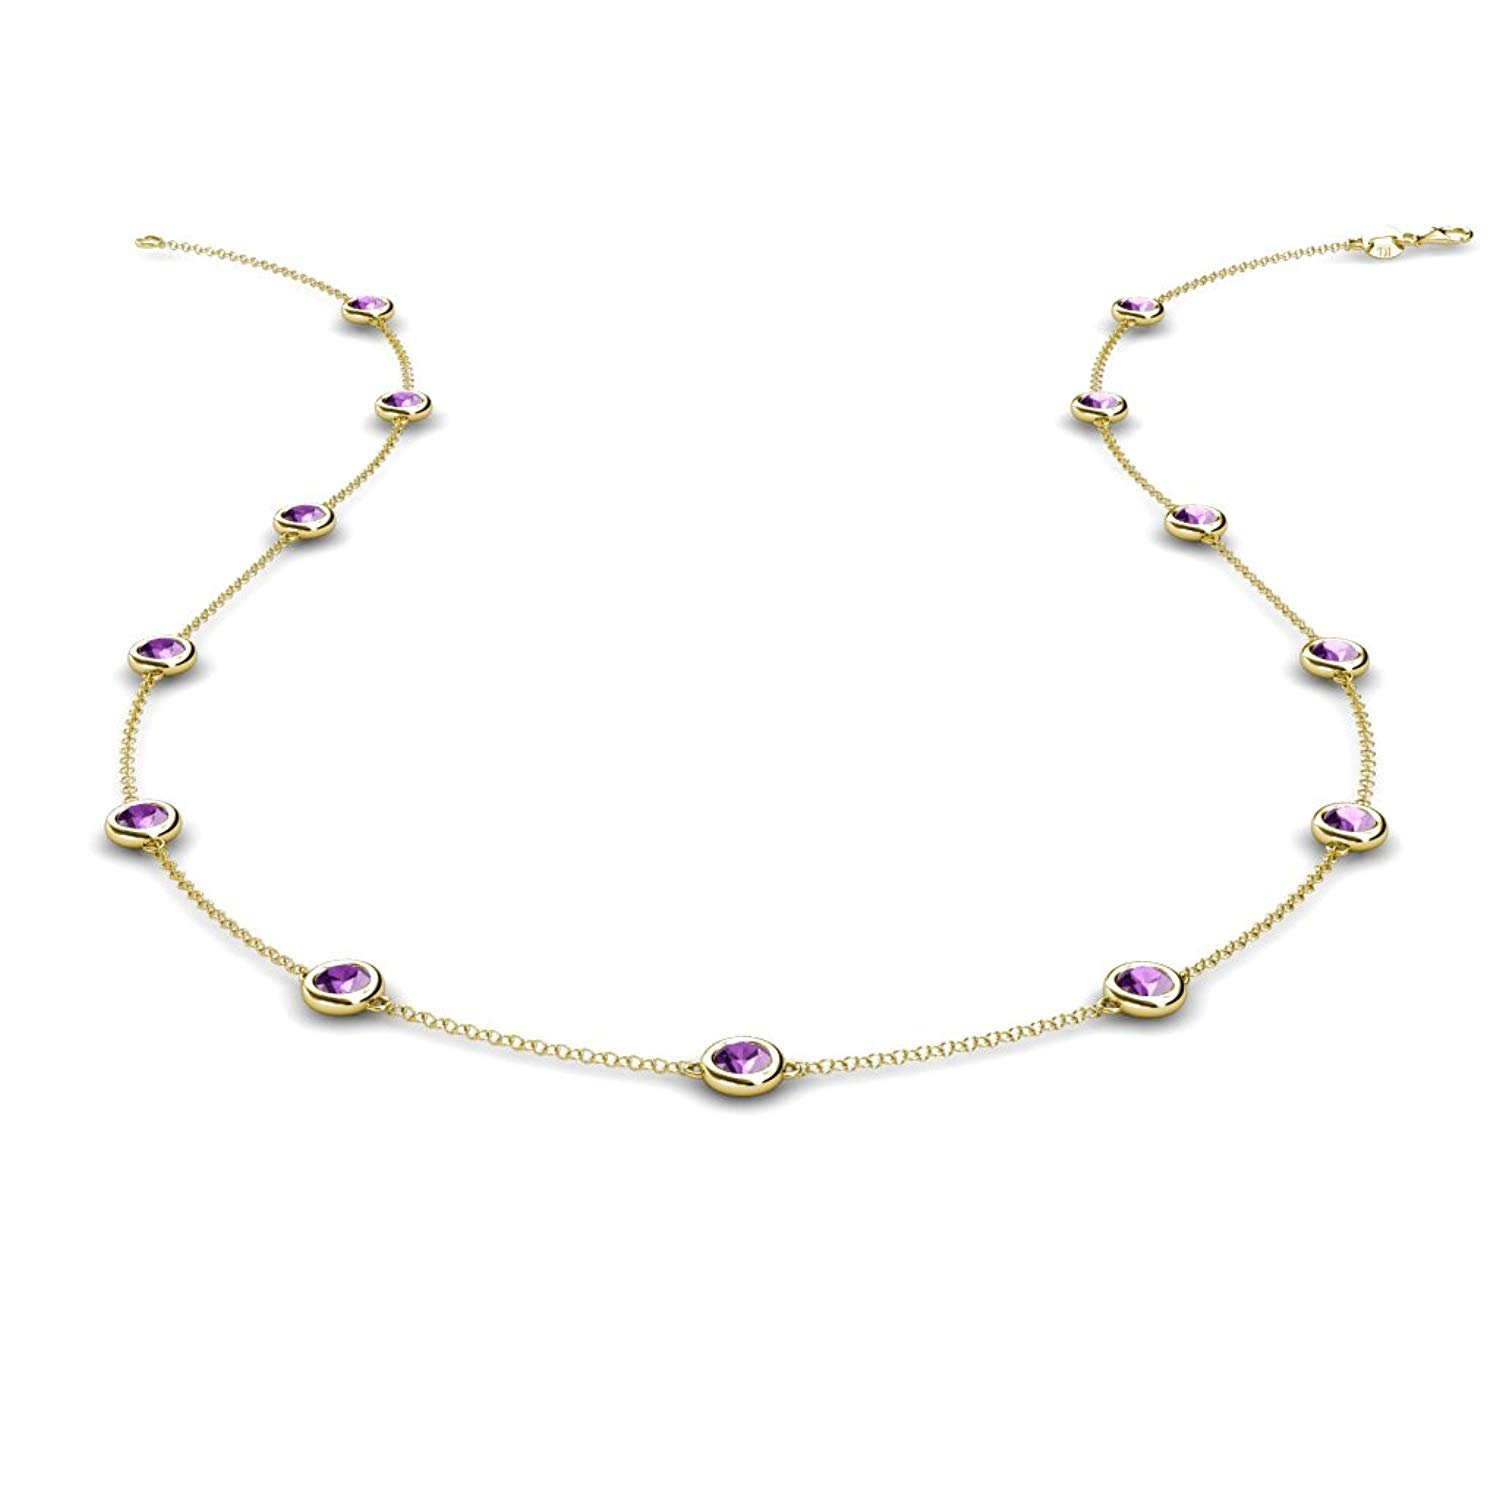 Amethyst 13 Station Necklace 1.04 cttw in 14K Yellow Gold by TriJewels